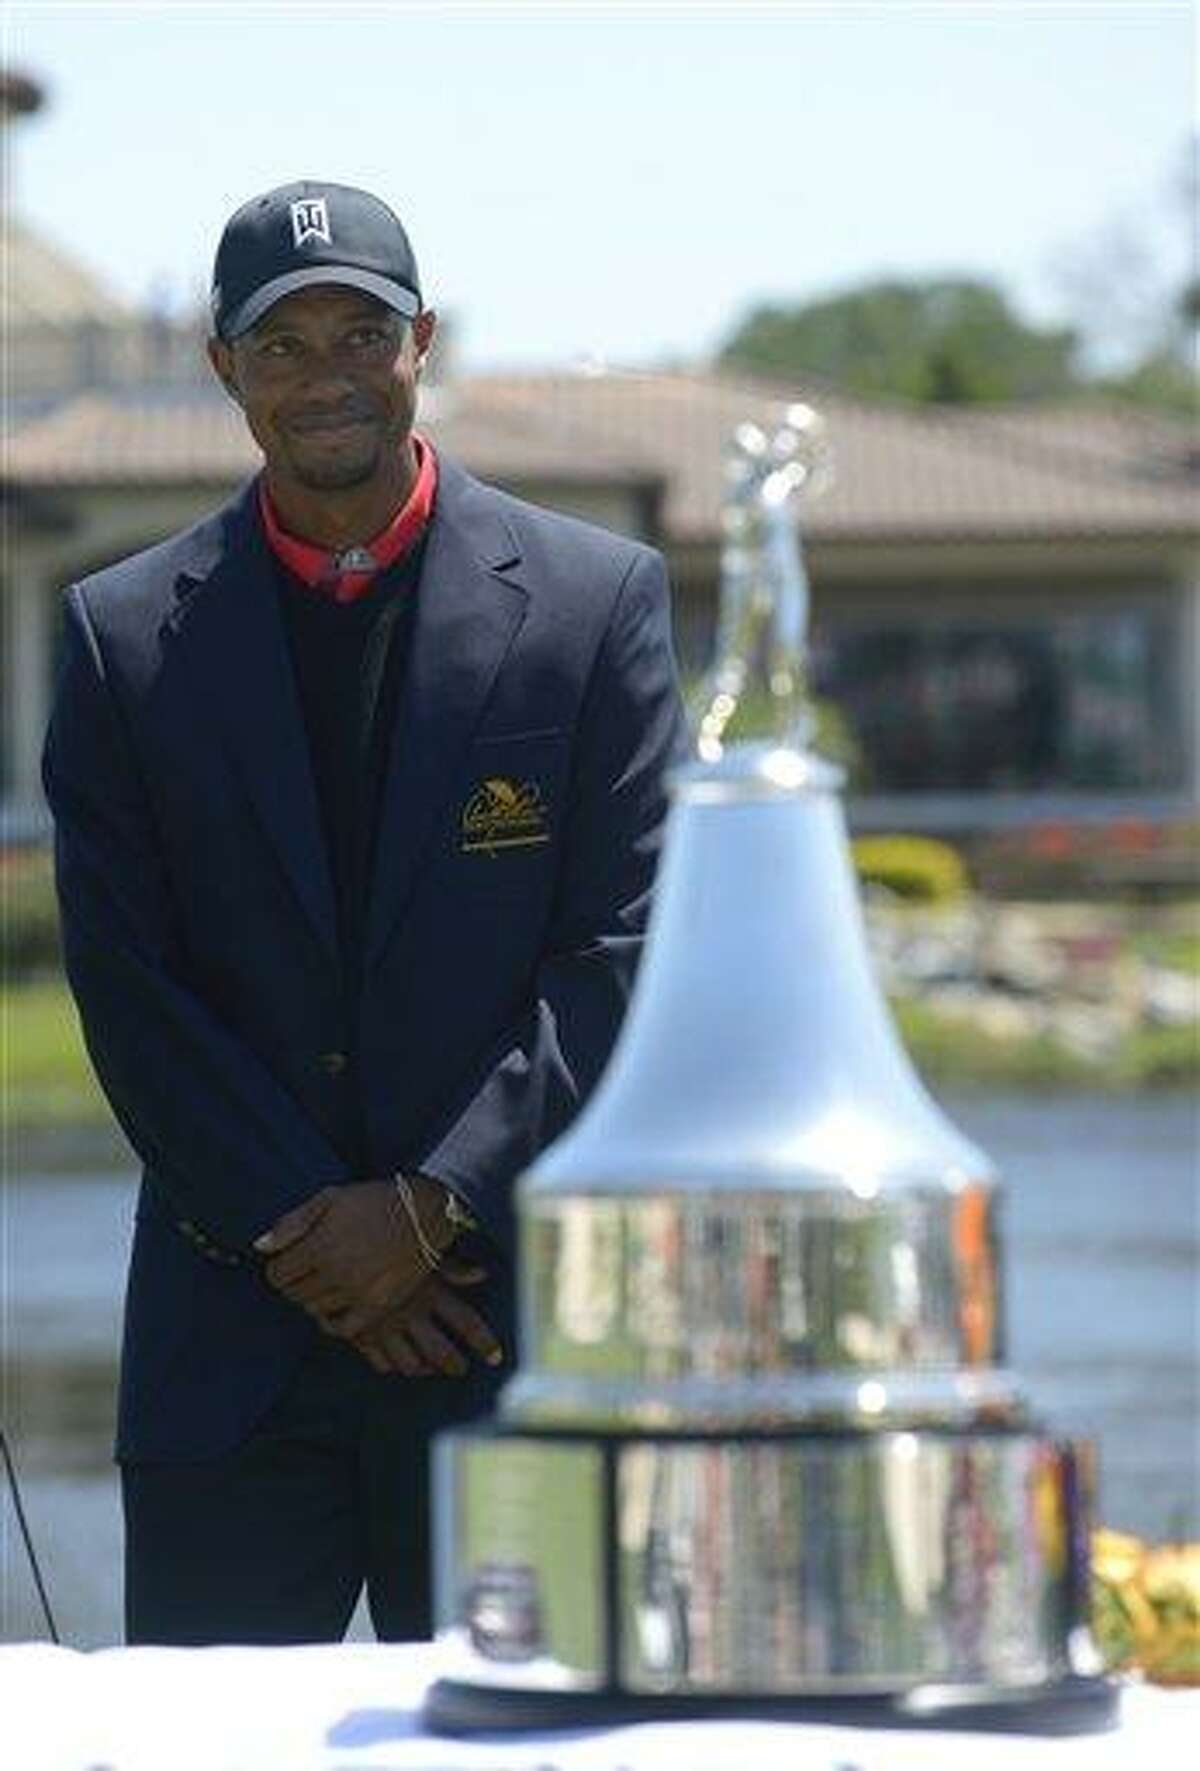 Tiger Woods stands next to the championship trophy during the awards presentation after Woods won the Arnold Palmer Invitational golf tournament in Orlando, Fla., Monday, March 25, 2013.(AP Photo/Phelan M. Ebenhack)